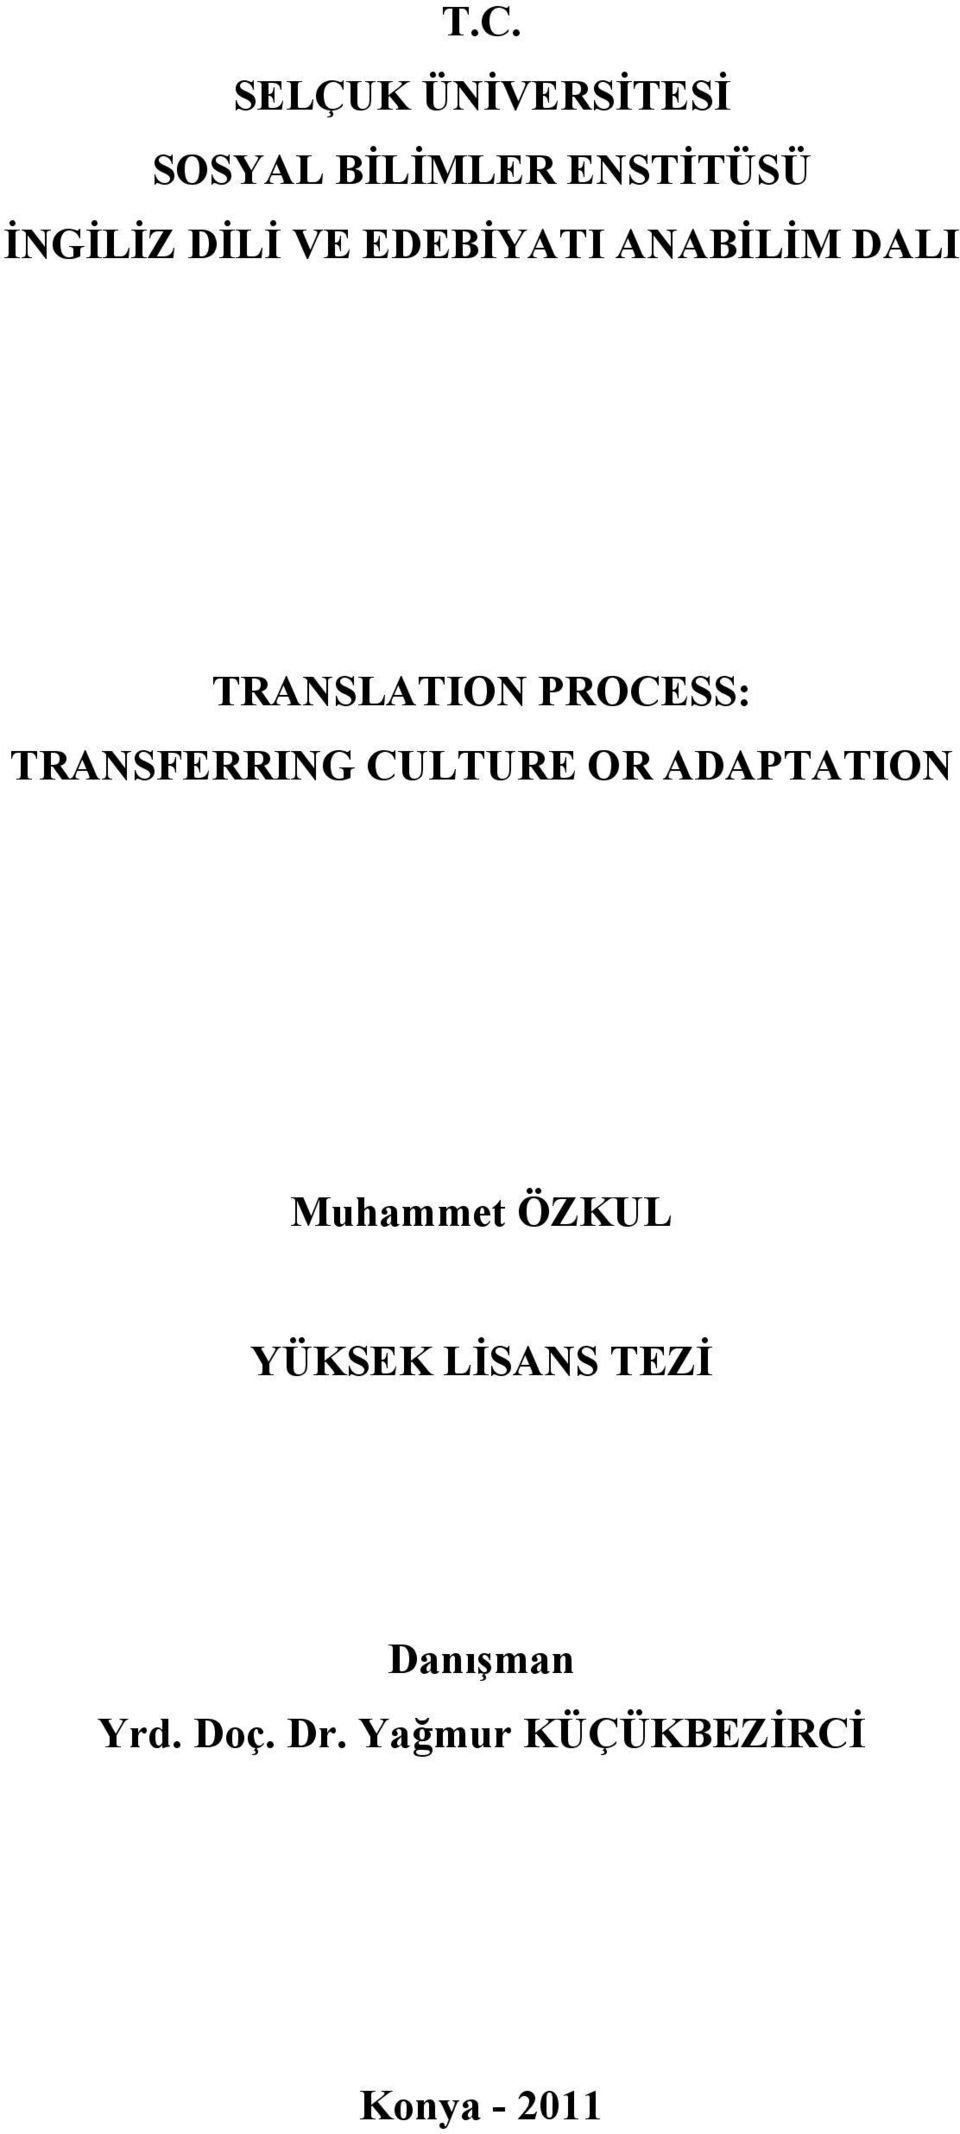 TRANSFERRING CULTURE OR ADAPTATION Muhammet ÖZKUL YÜKSEK